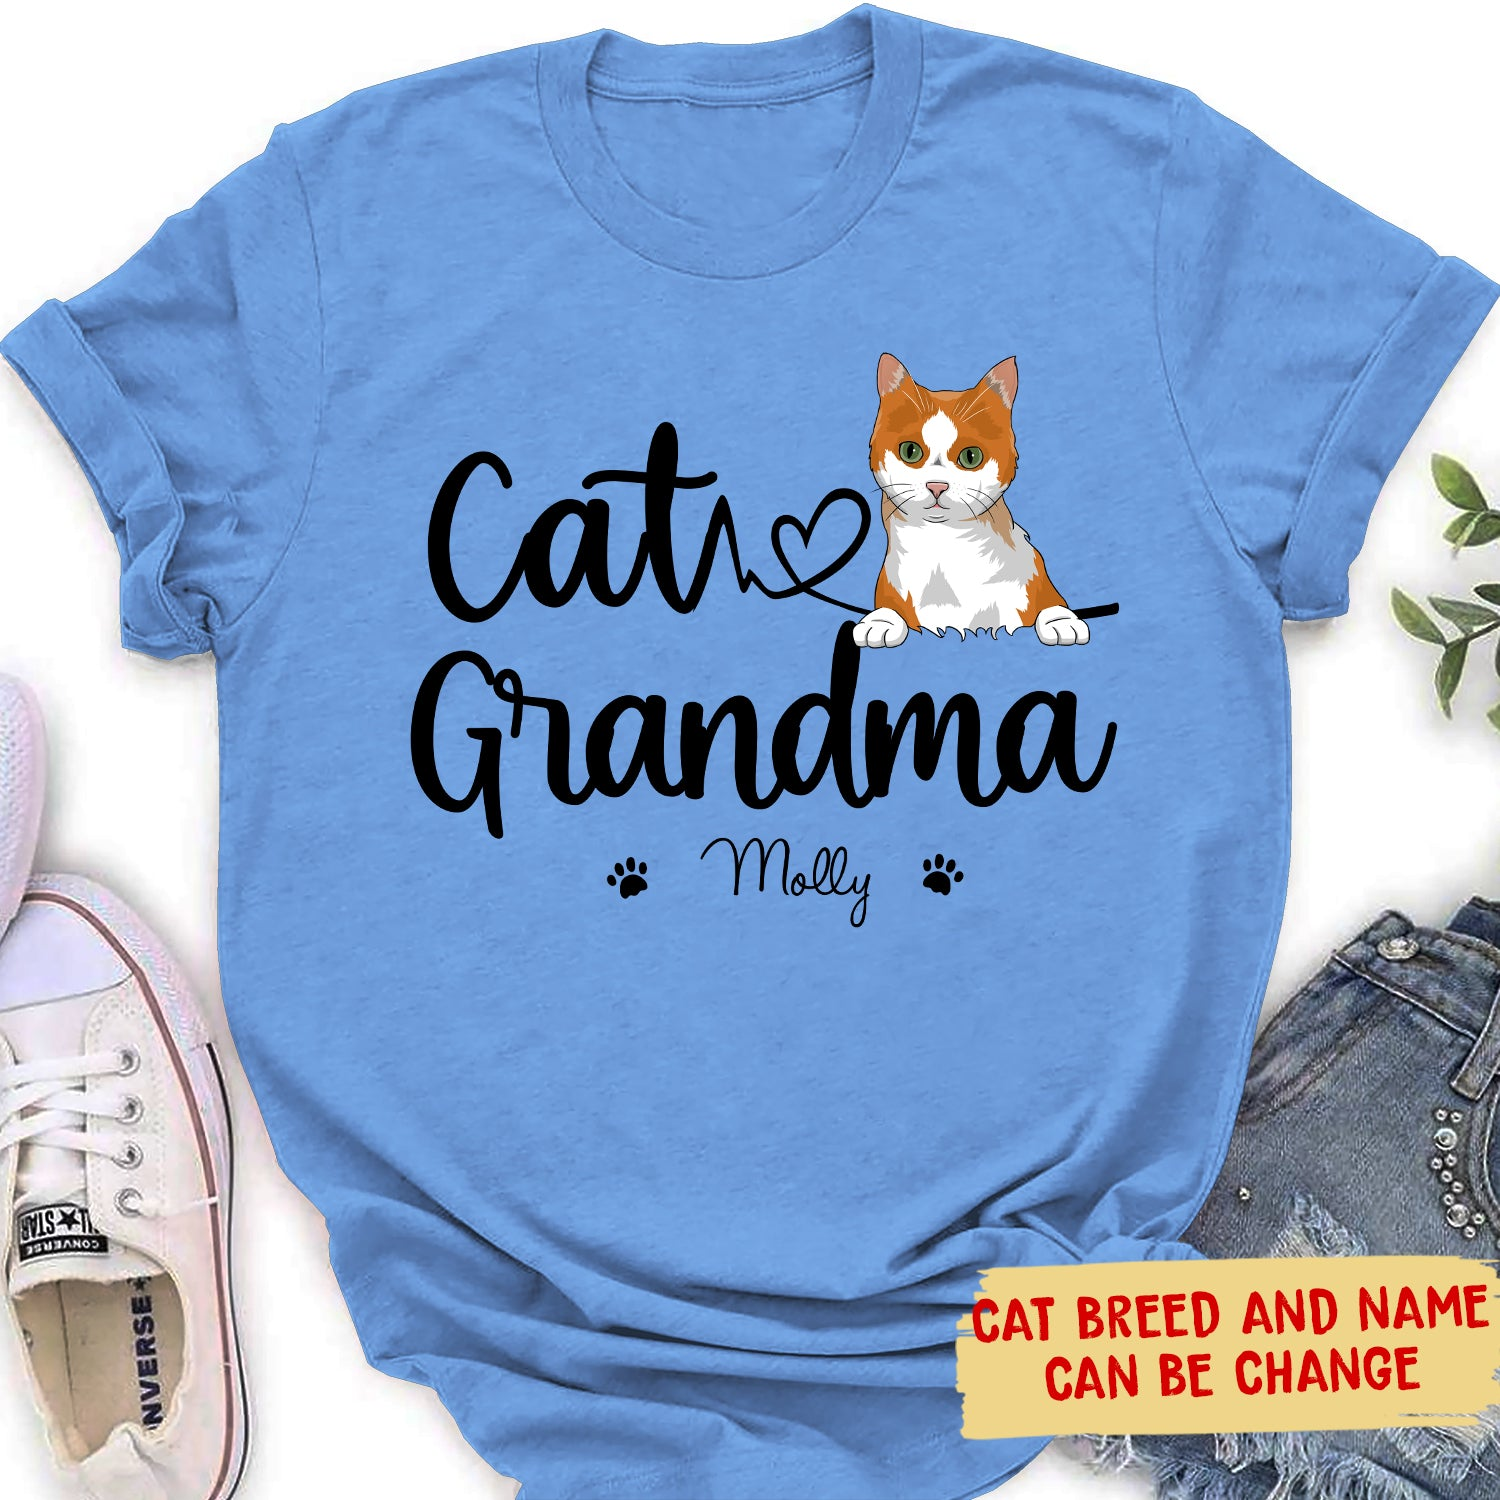 Cat Grandma - Personalized Custom Women's T-shirt - Gifts For Cat Lovers